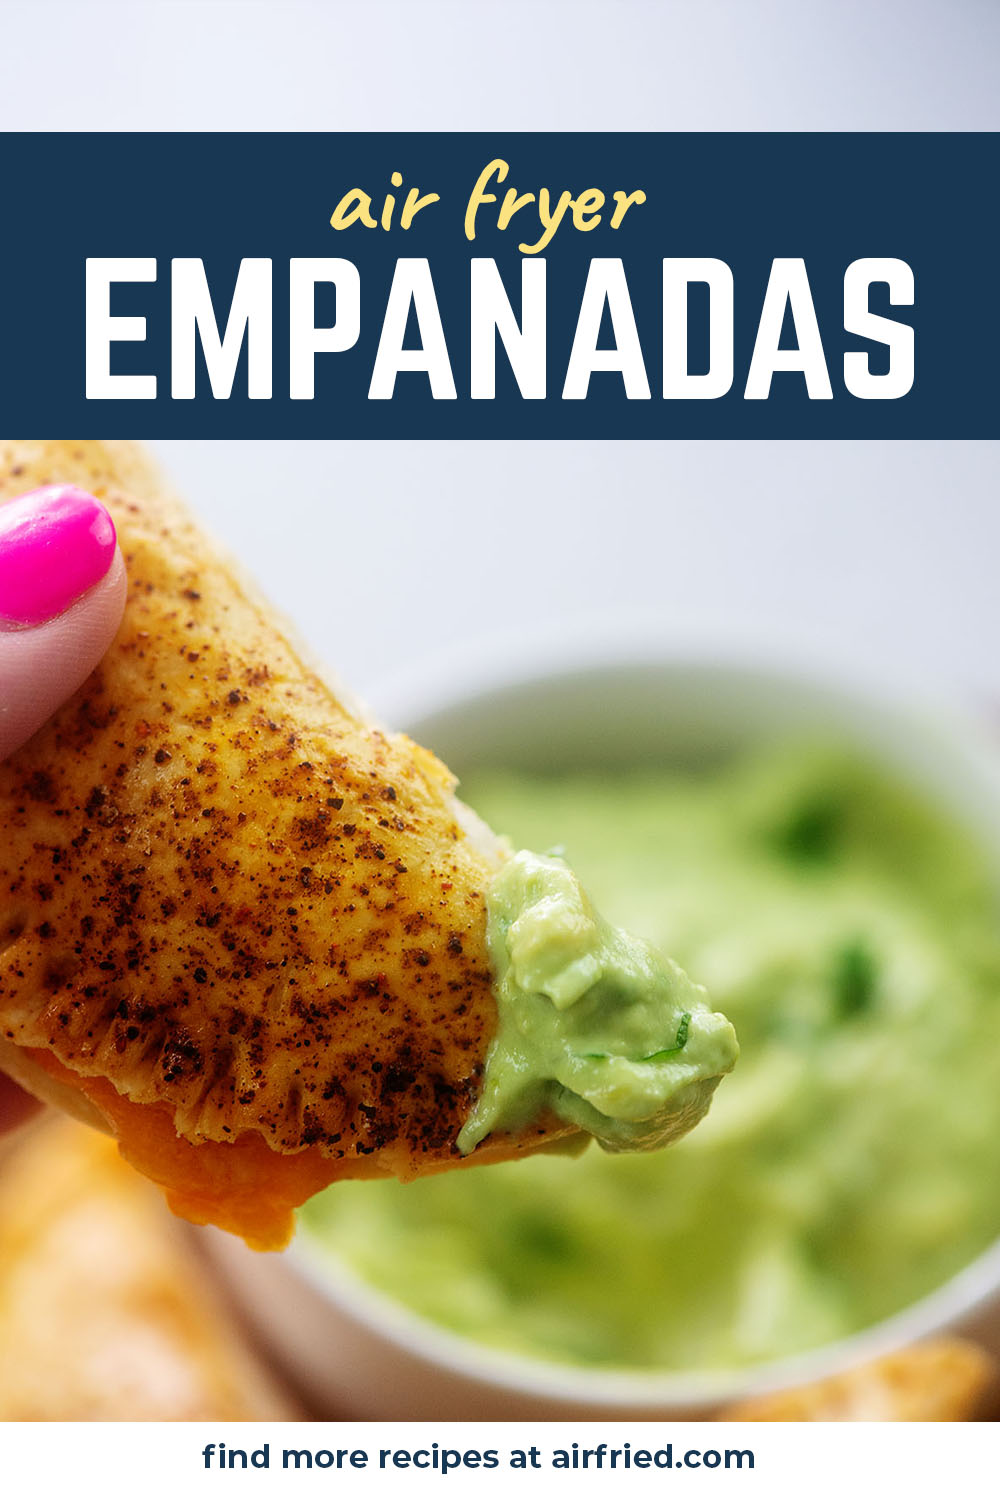 Our air fried empanadas are packed with chicken and cheese!